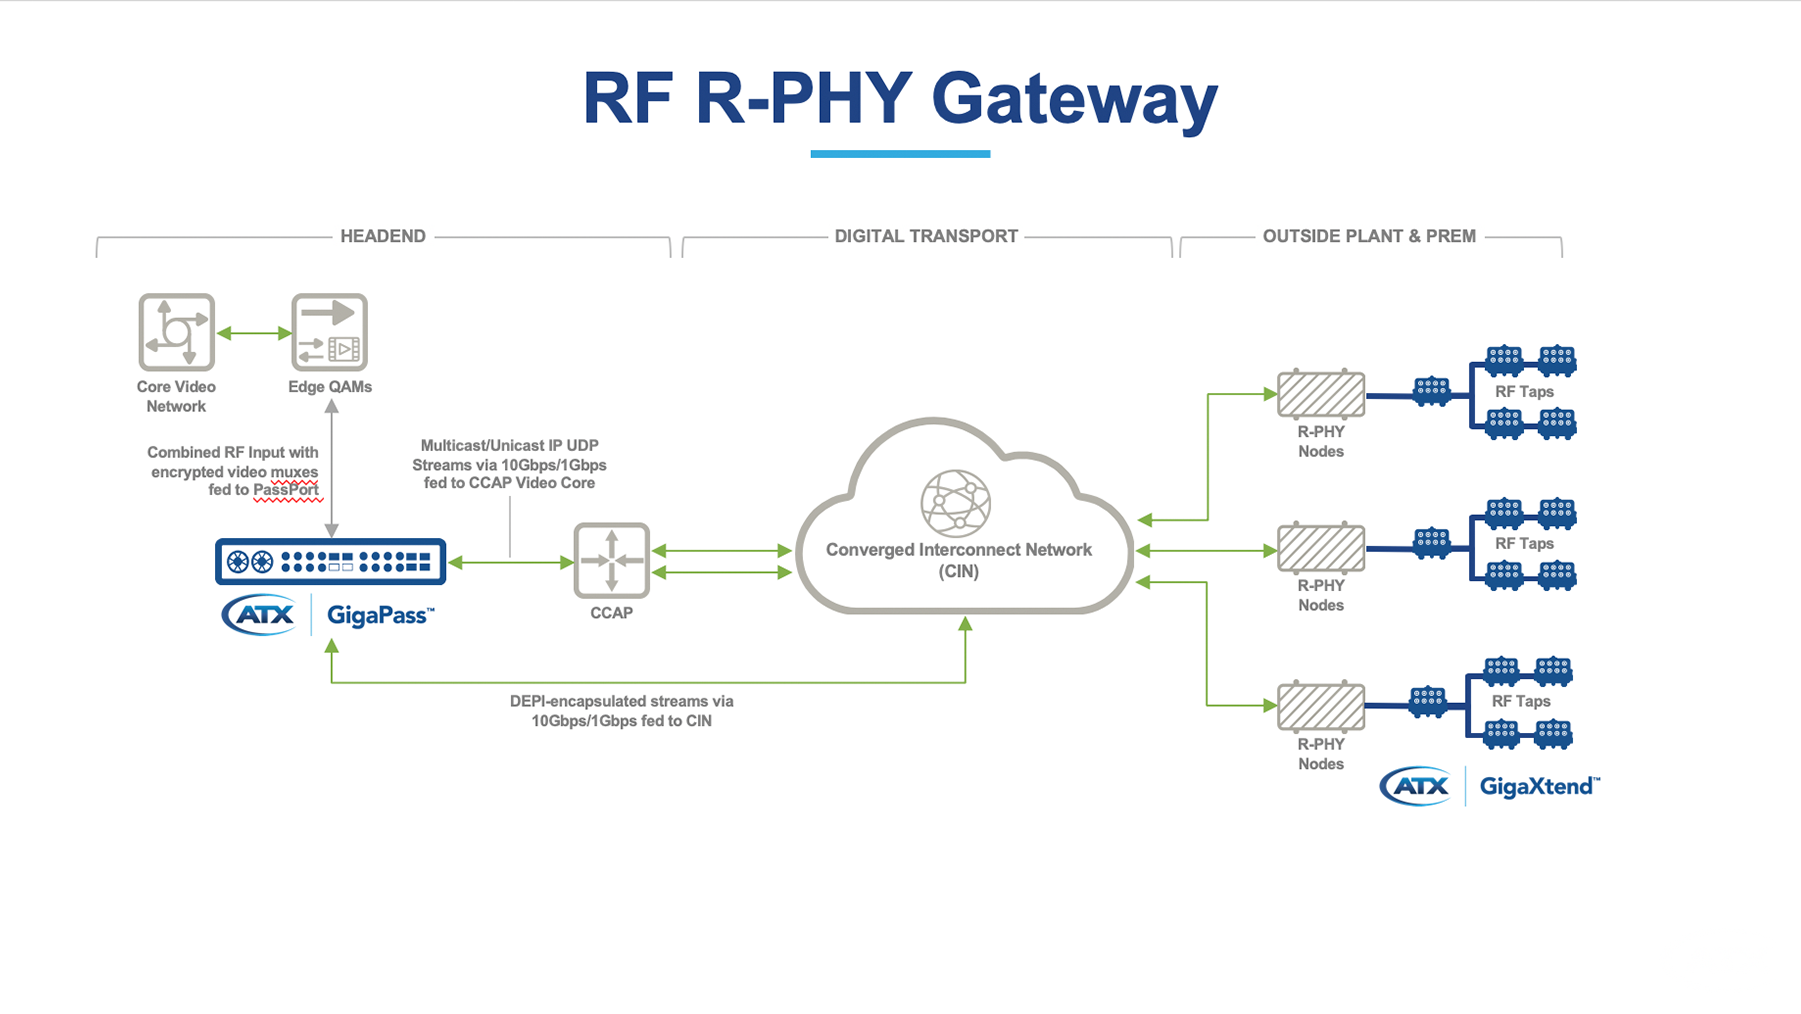 https://atx.com/wp-content/uploads/product-diagram-RF-R-PHY-Gateway.png